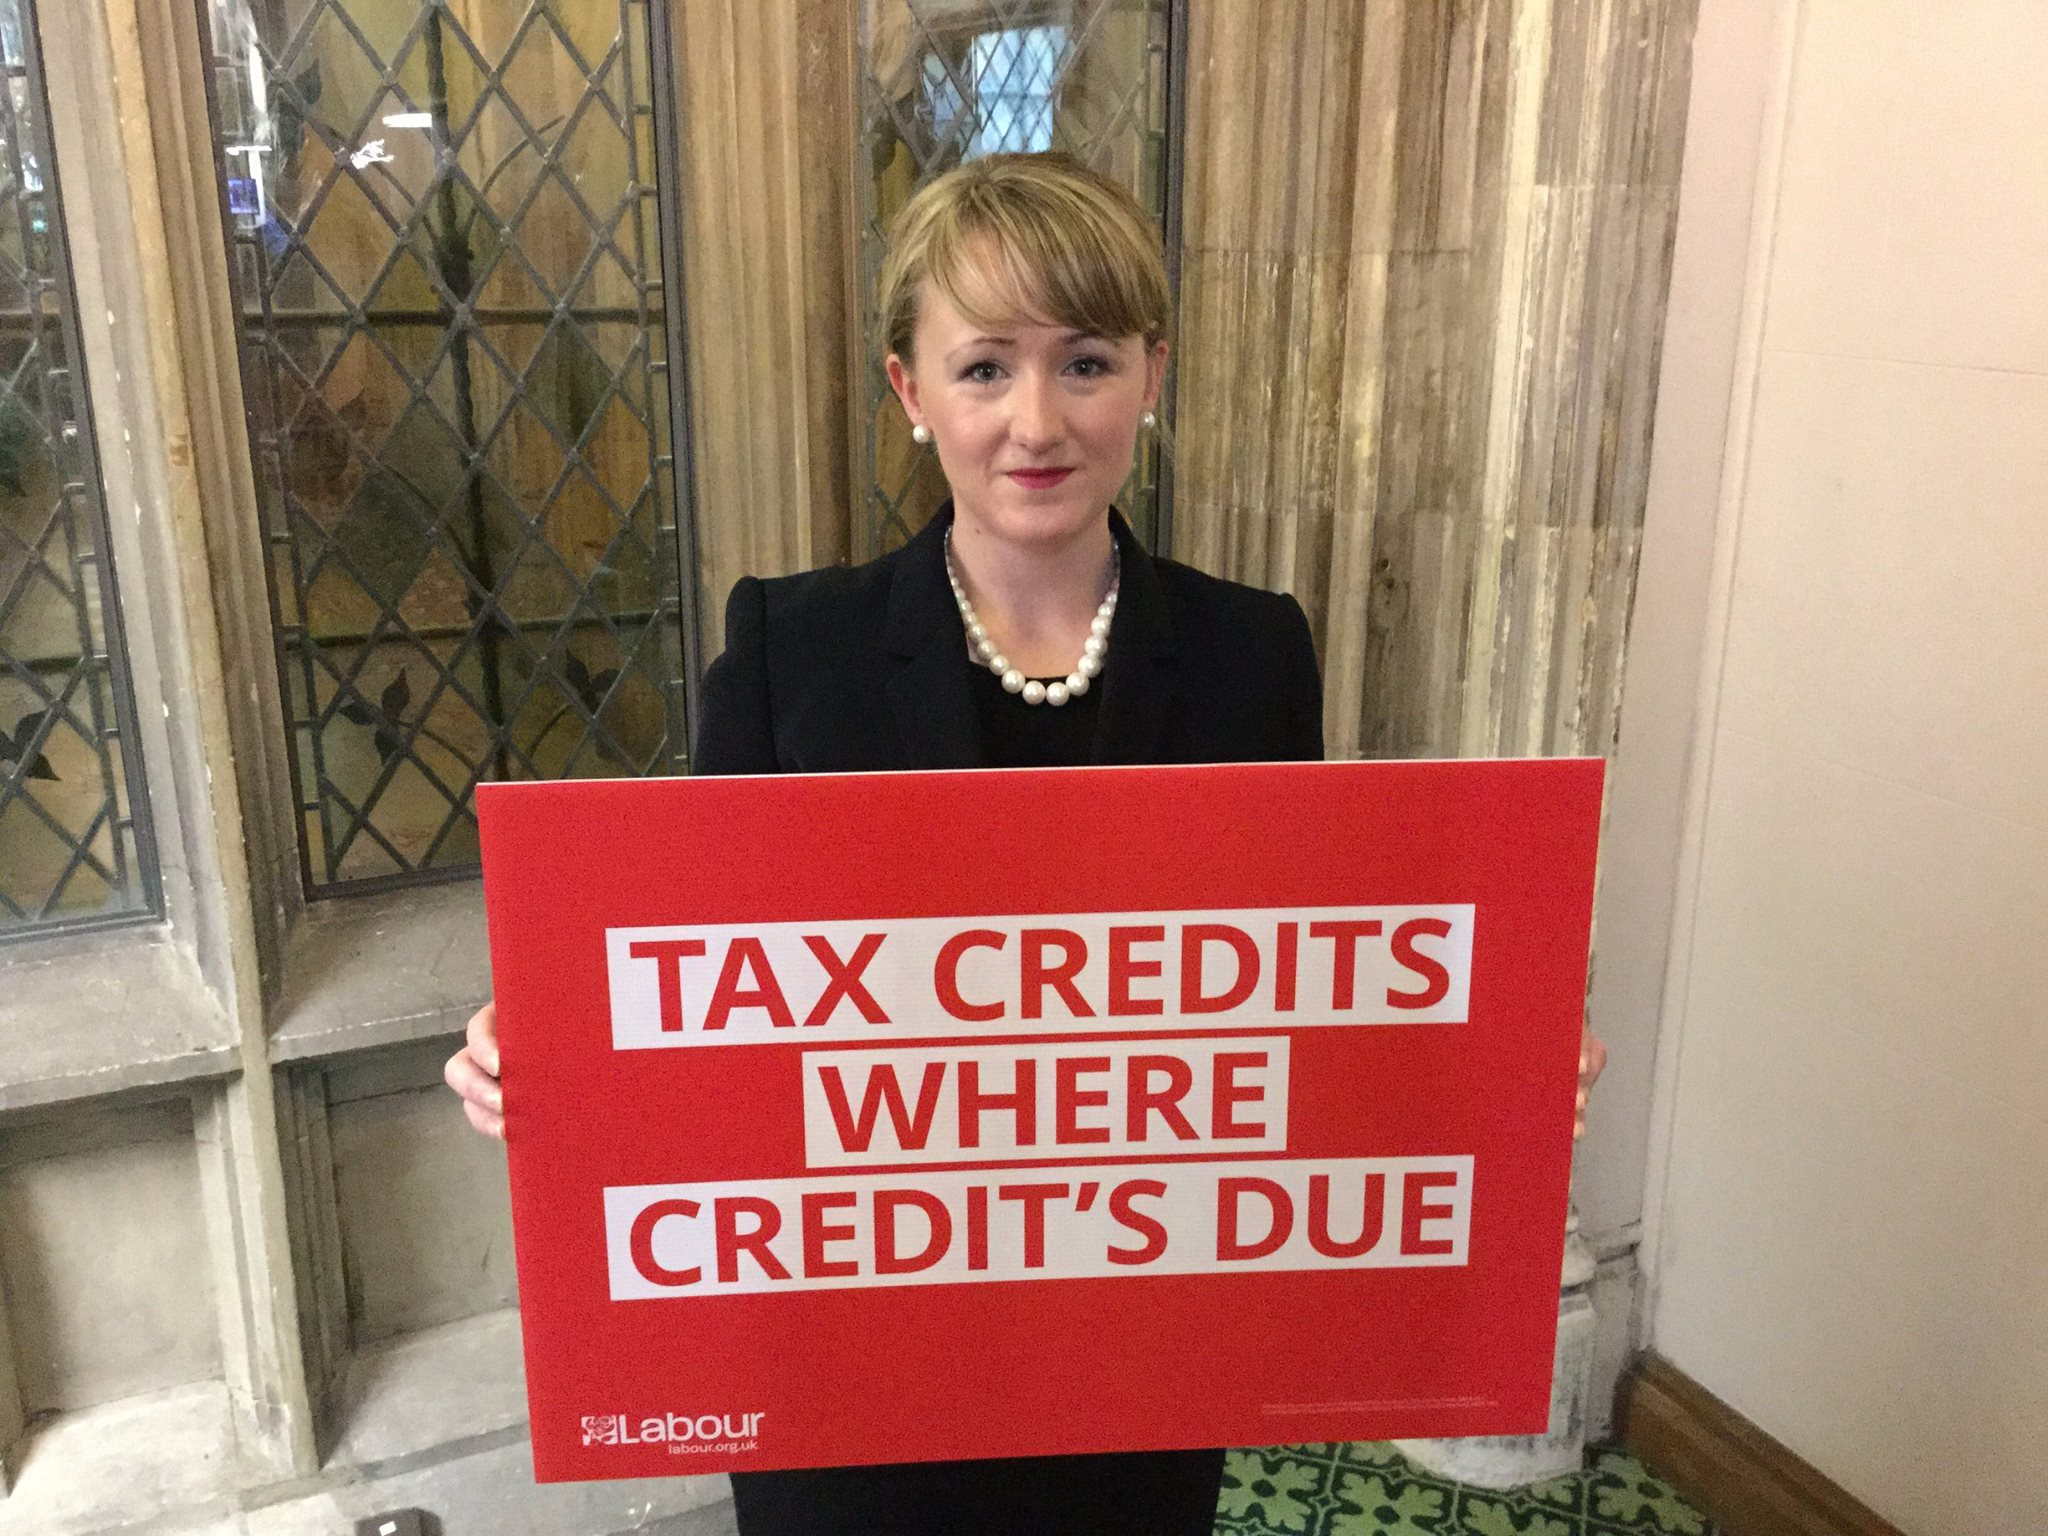 Becky_taxcredits.jpg